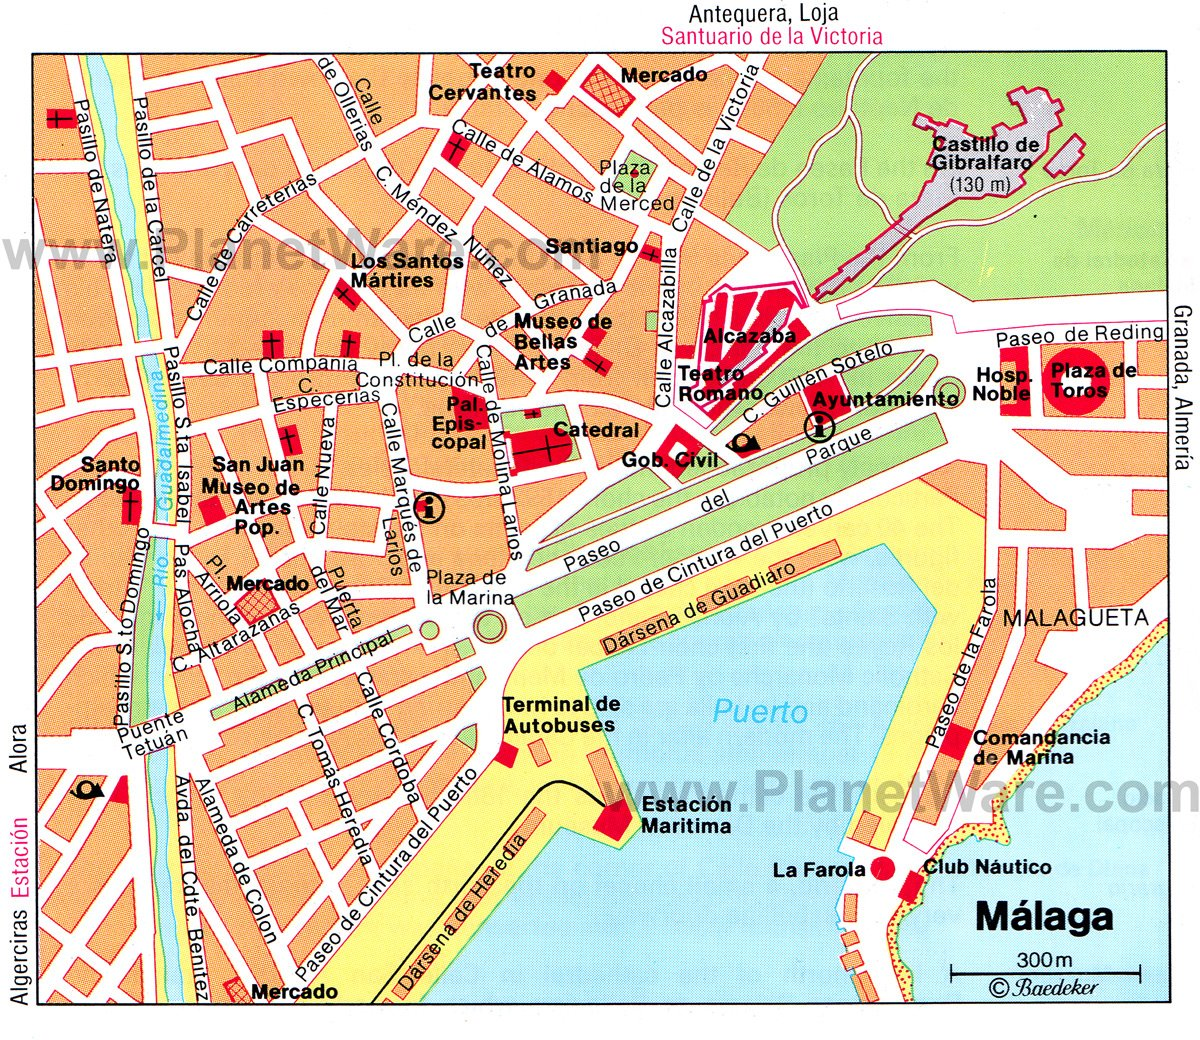 toprated tourist attractions in malaga  planetware - málaga map  tourist attractions